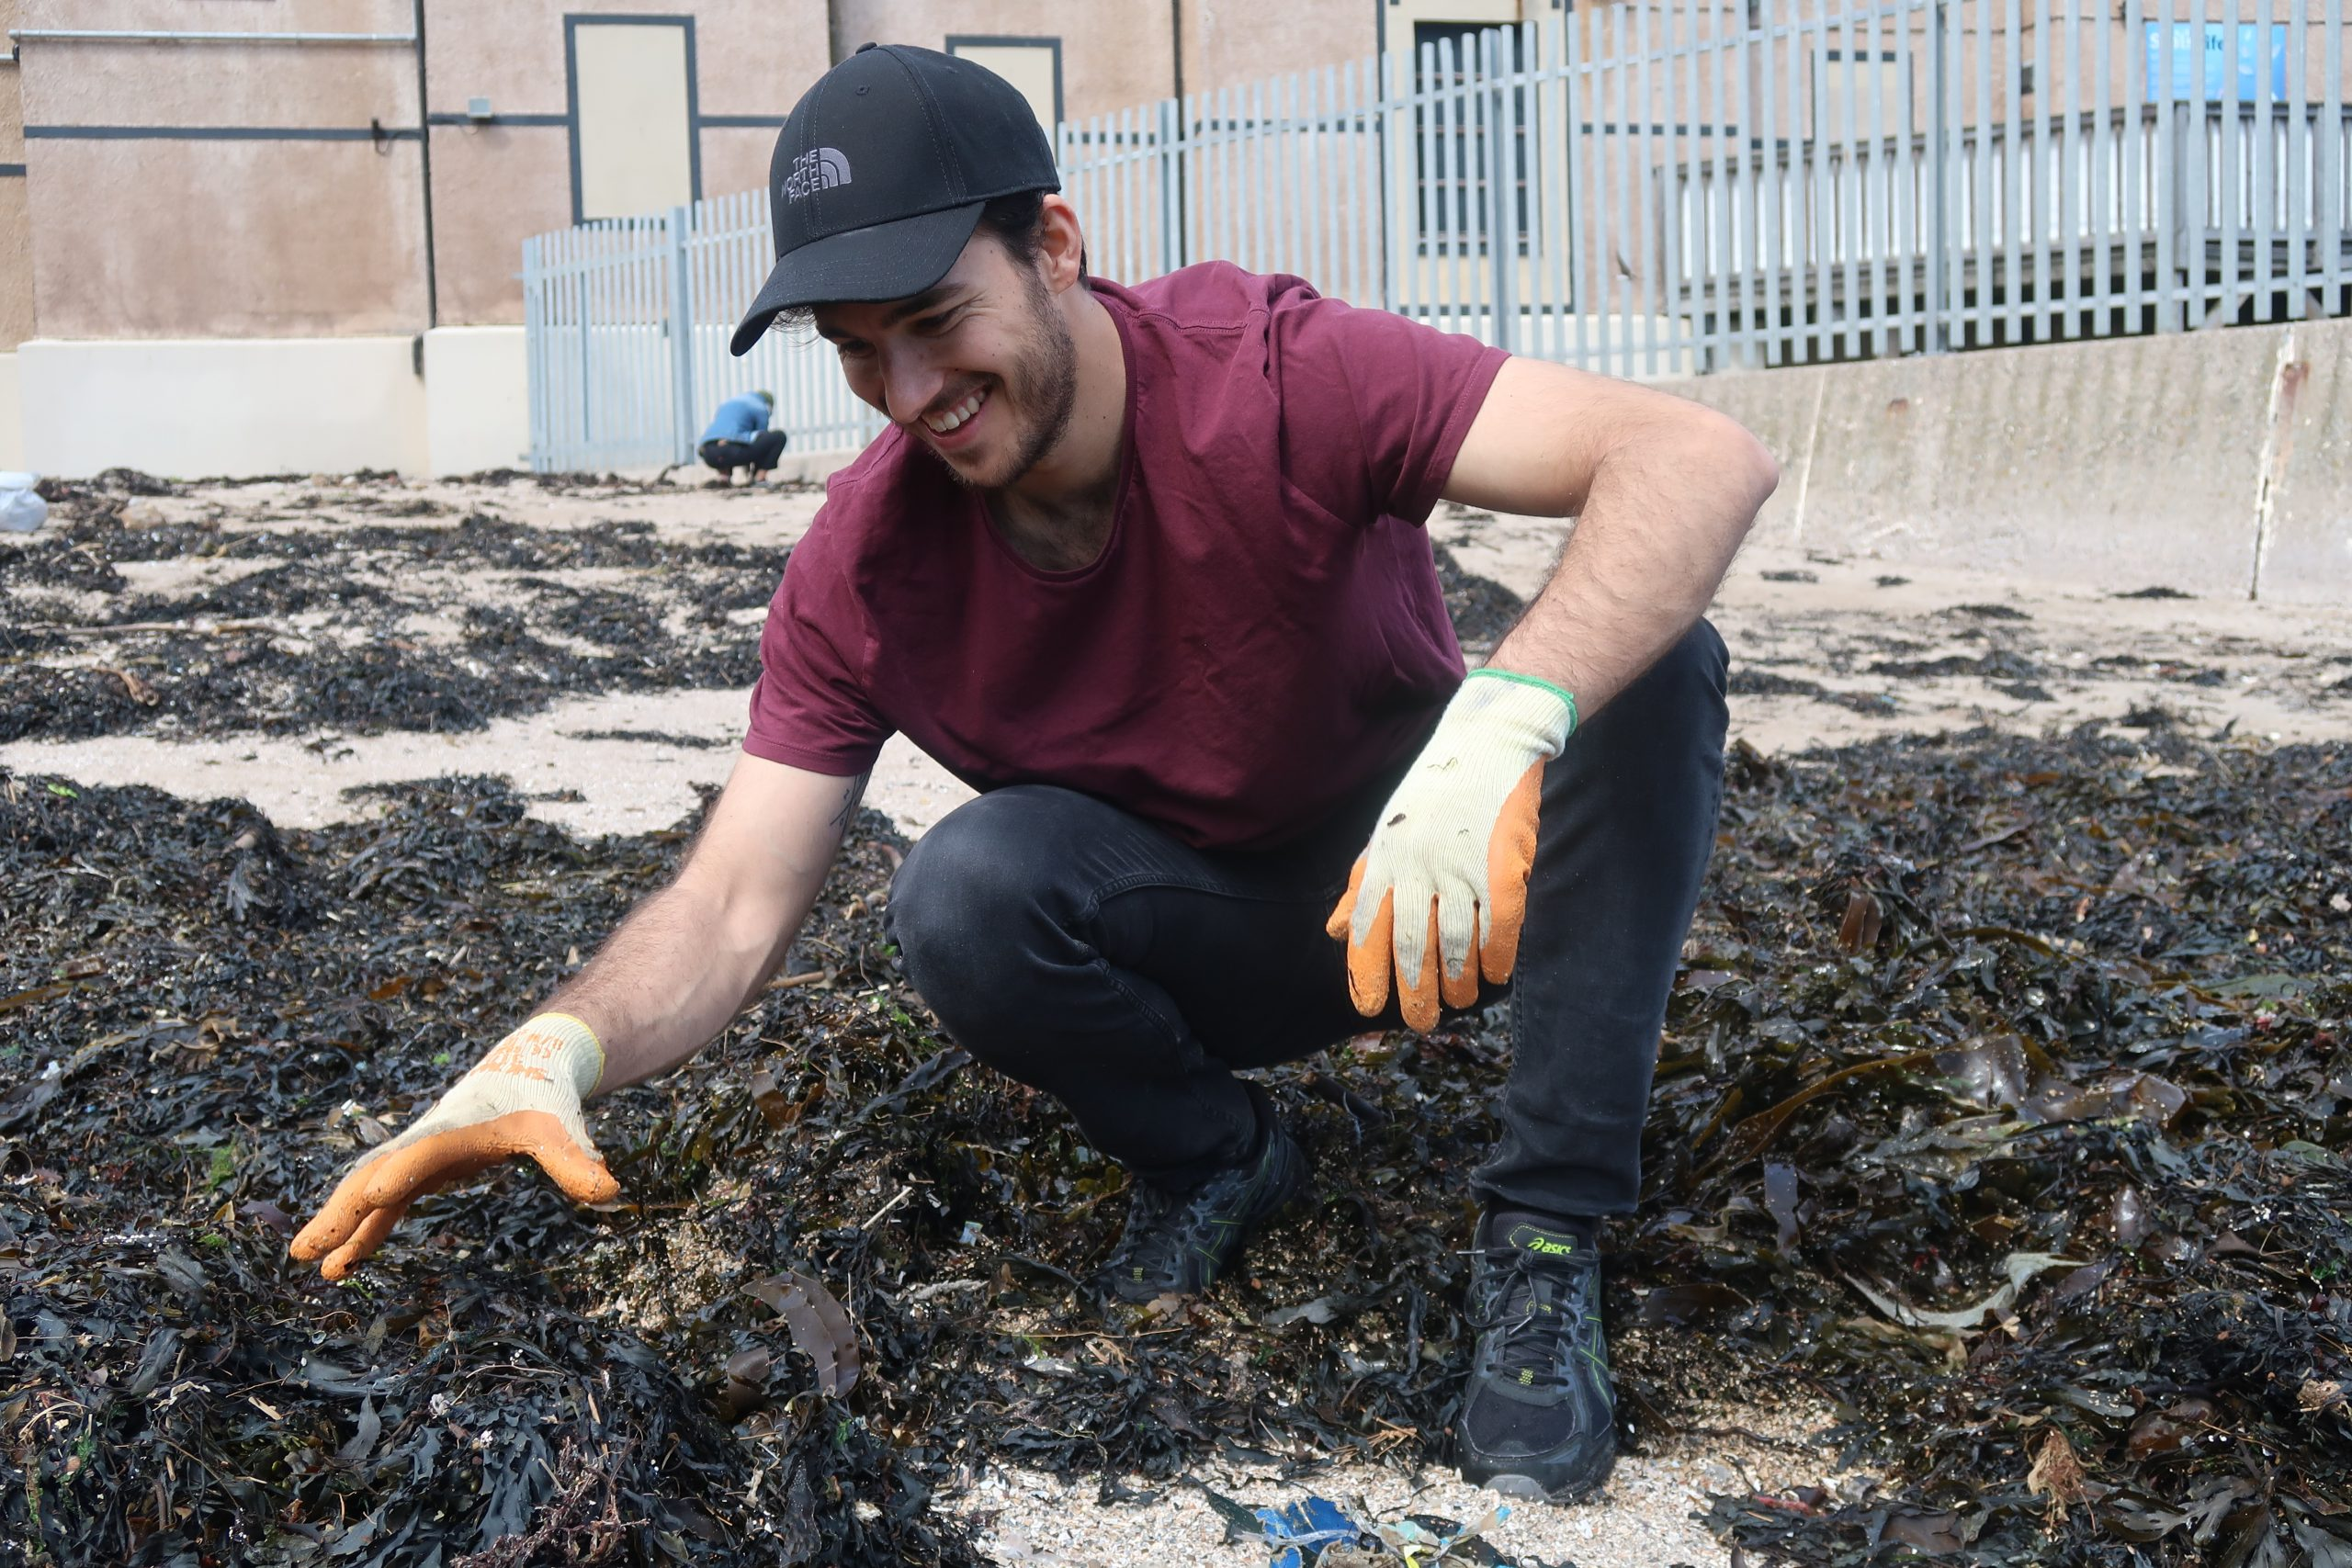 Juan Castano in action at a beach cleanup.